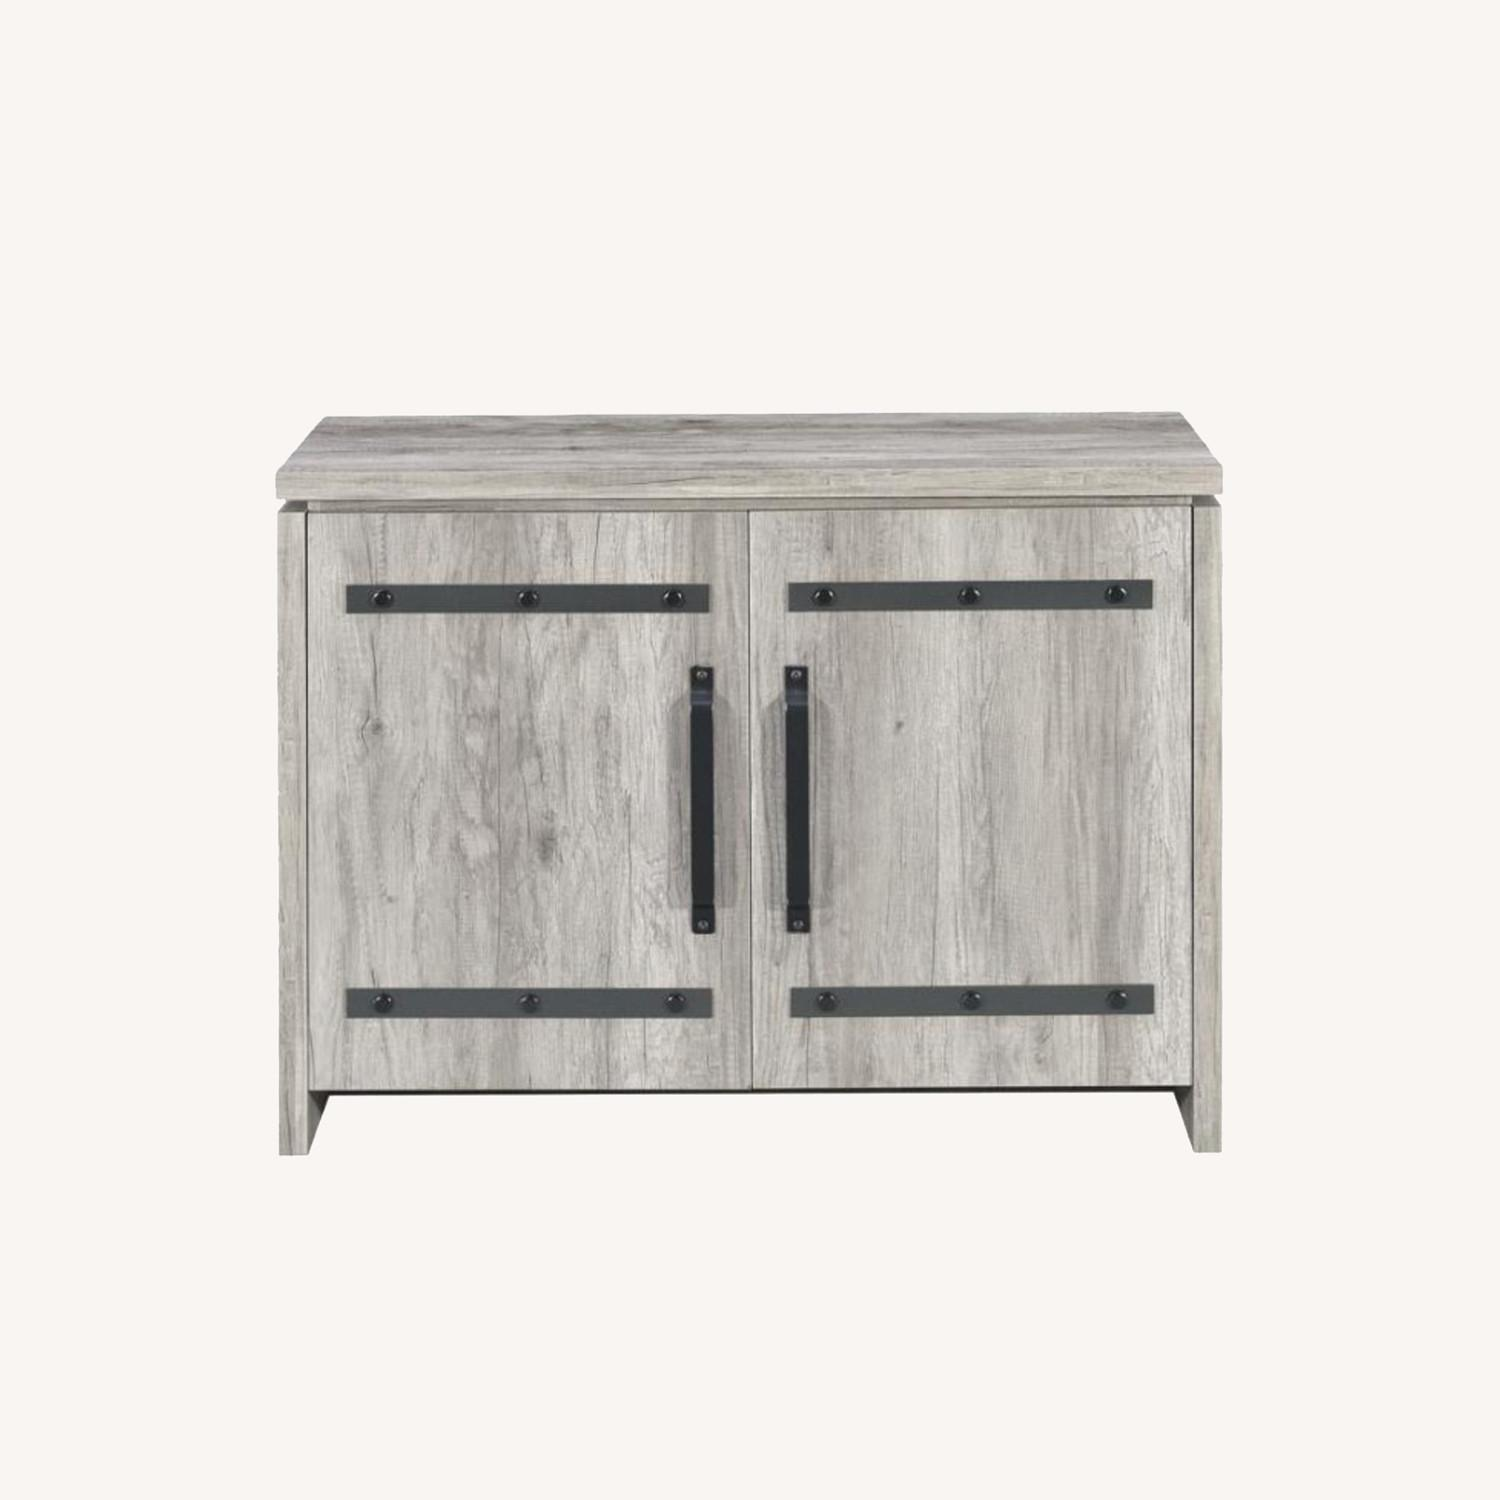 Accent Cabinet In Grey Driftwood Finish - image-7